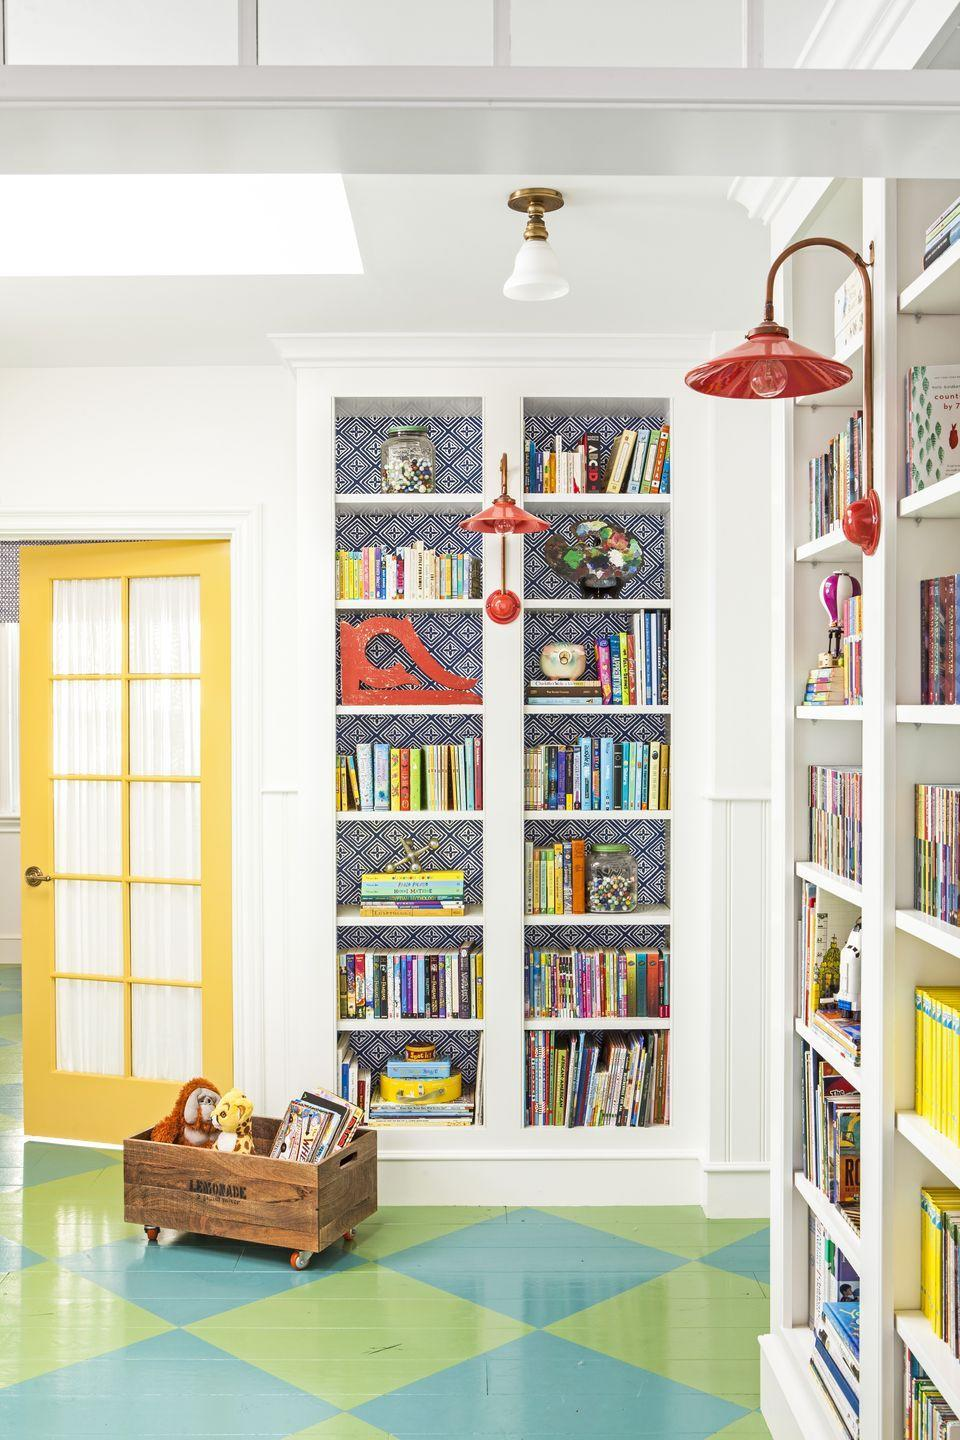 """<p>Just because you're short on square footage doesn't mean you have to deprive yourself of color in a nook-of-a-playroom. There's always room for a bright yellow door—this one in <a href=""""https://www.dunnedwards.com/colors/browser/de5353"""" rel=""""nofollow noopener"""" target=""""_blank"""" data-ylk=""""slk:Golden Crest by Dunn-Edwards Paints"""" class=""""link rapid-noclick-resp"""">Golden Crest by Dunn-Edwards Paints</a>—no matter how small the space. </p>"""